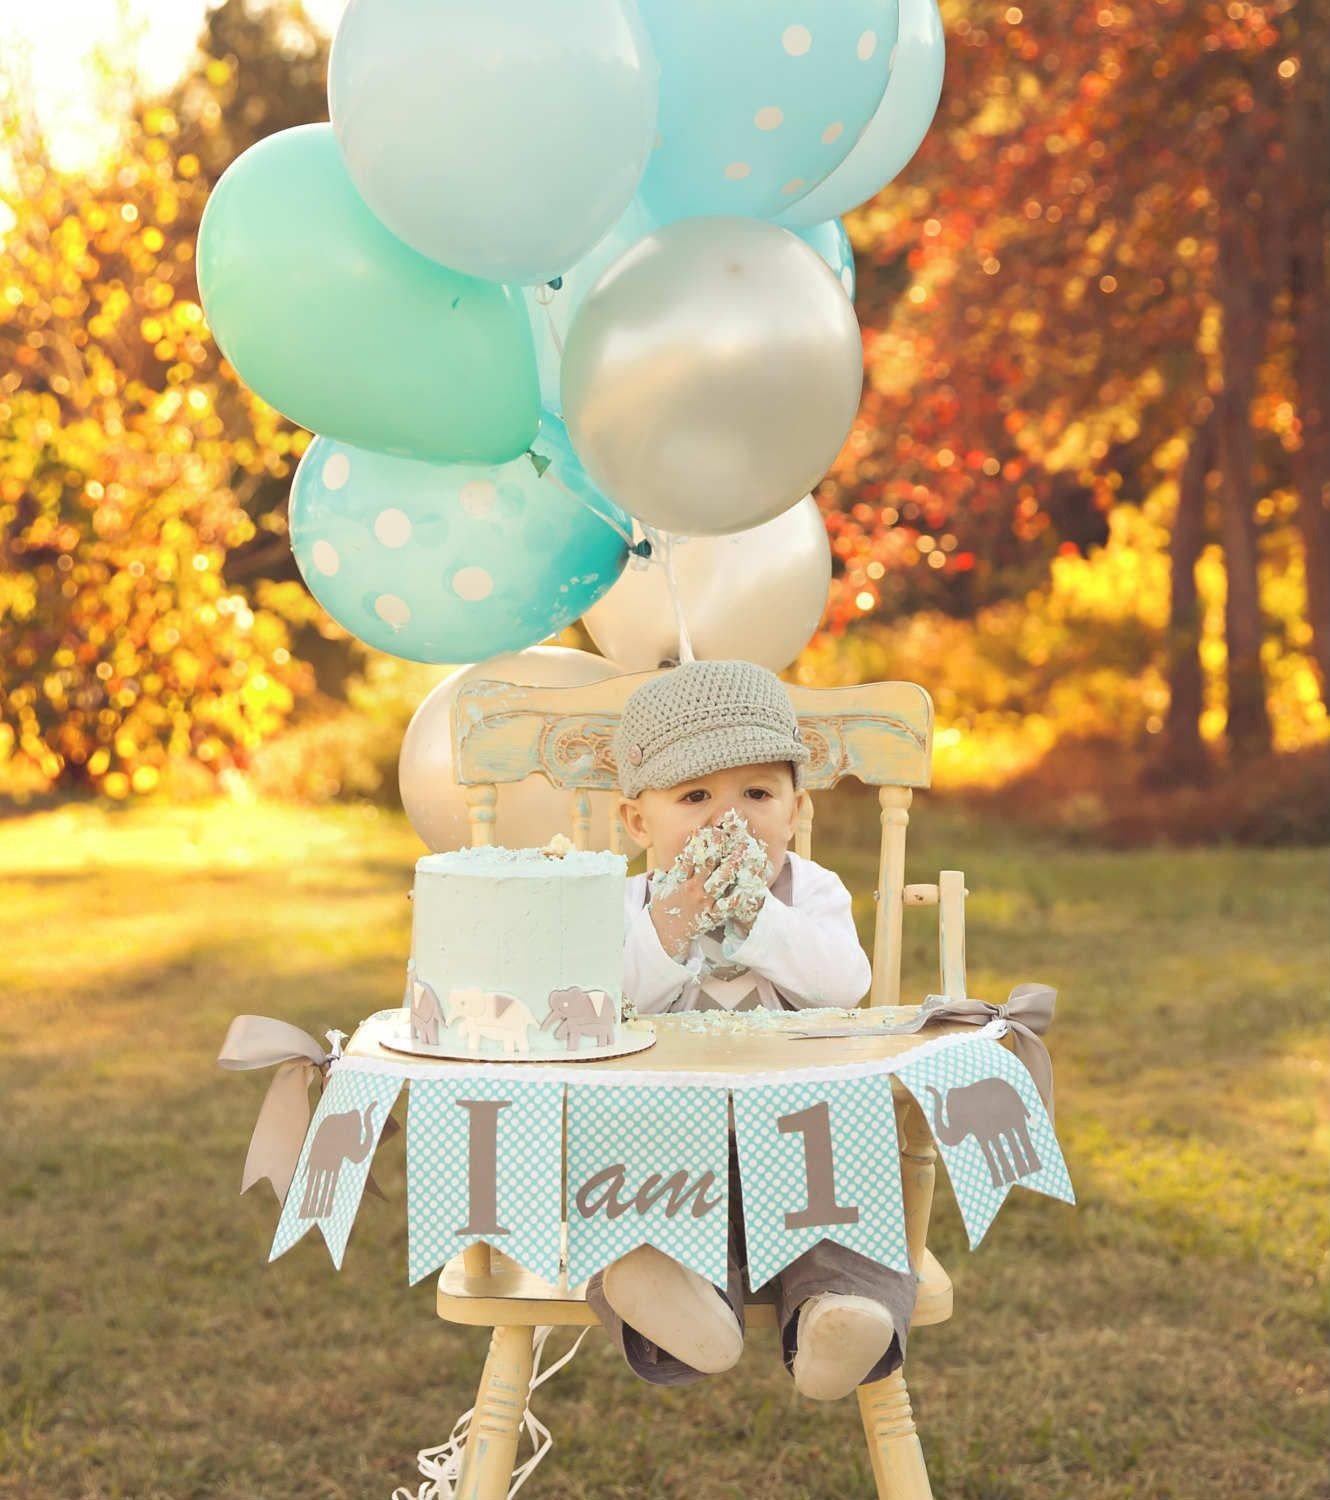 first birthday party themes ; 1st-birthday-party-themes-33-lovely-architecture-over-1st-birthday-party-themes-1st-birthday-party-ideas-for-boys-part-2-of-1st-birthday-party-themes